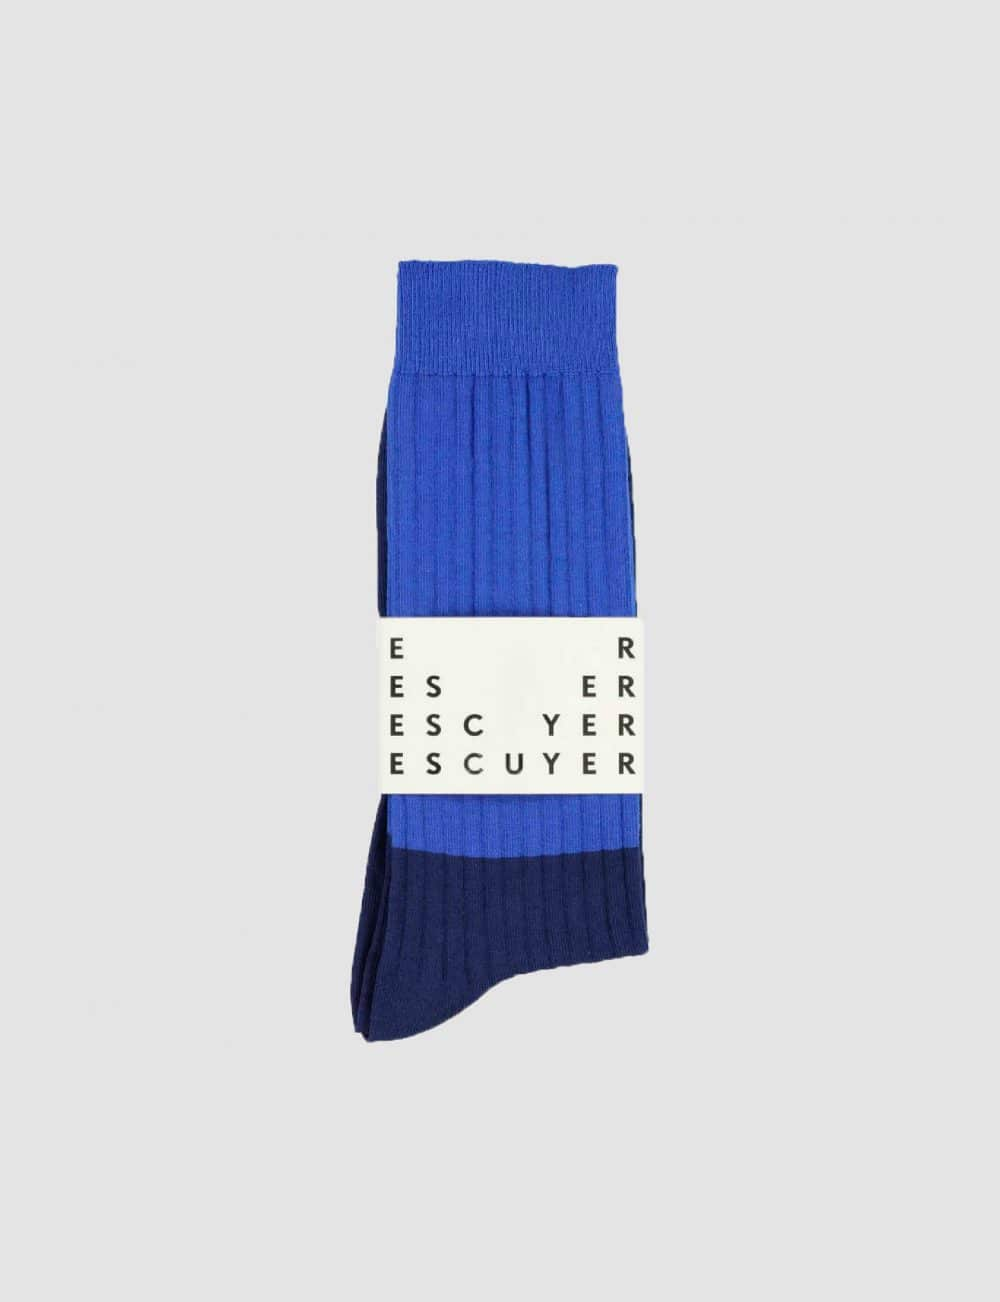 Escuyer - Color block - Blue